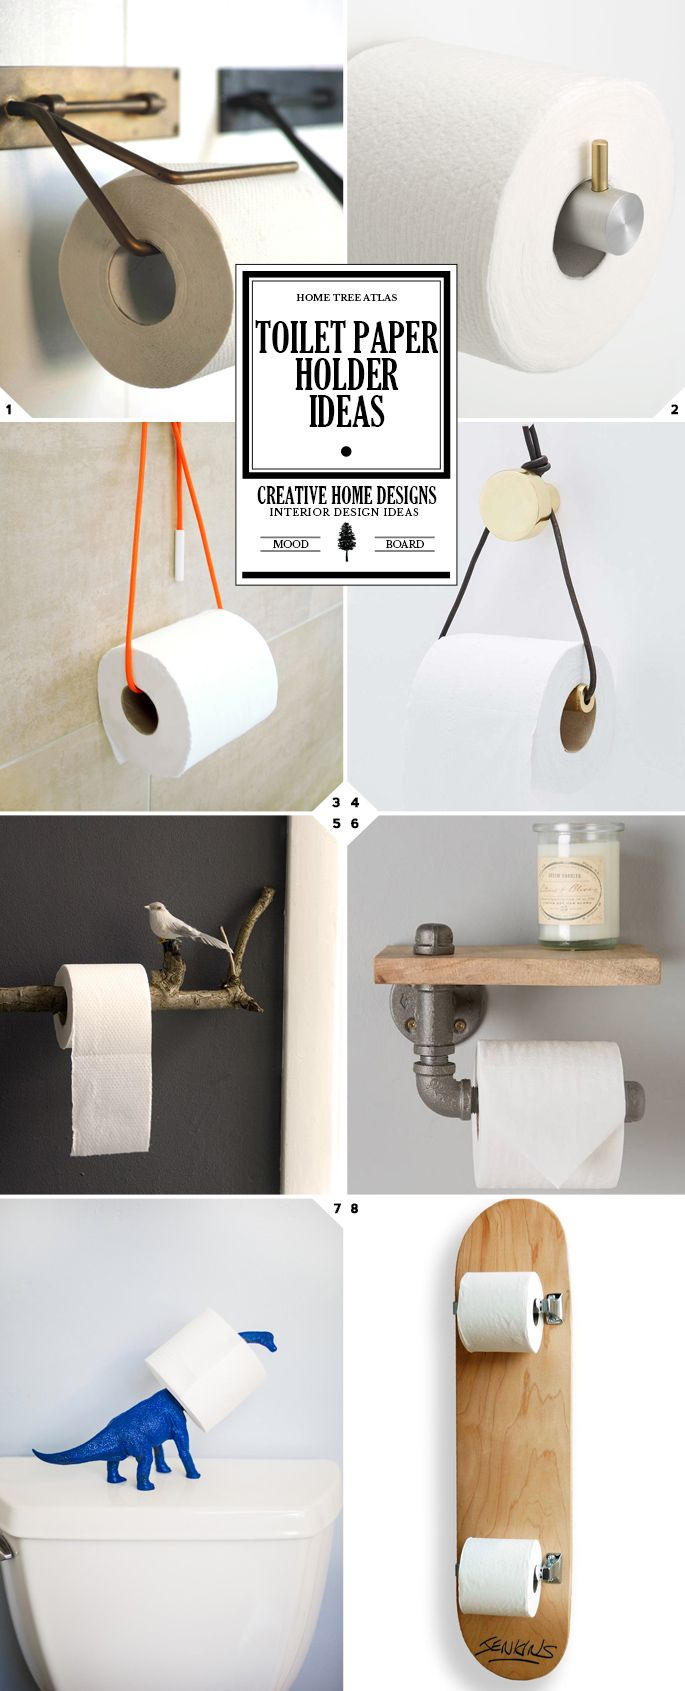 Toilet Paper Holder Unique Keeping It Classy Toilet Paper Holder Ideas From Diy Ideas To